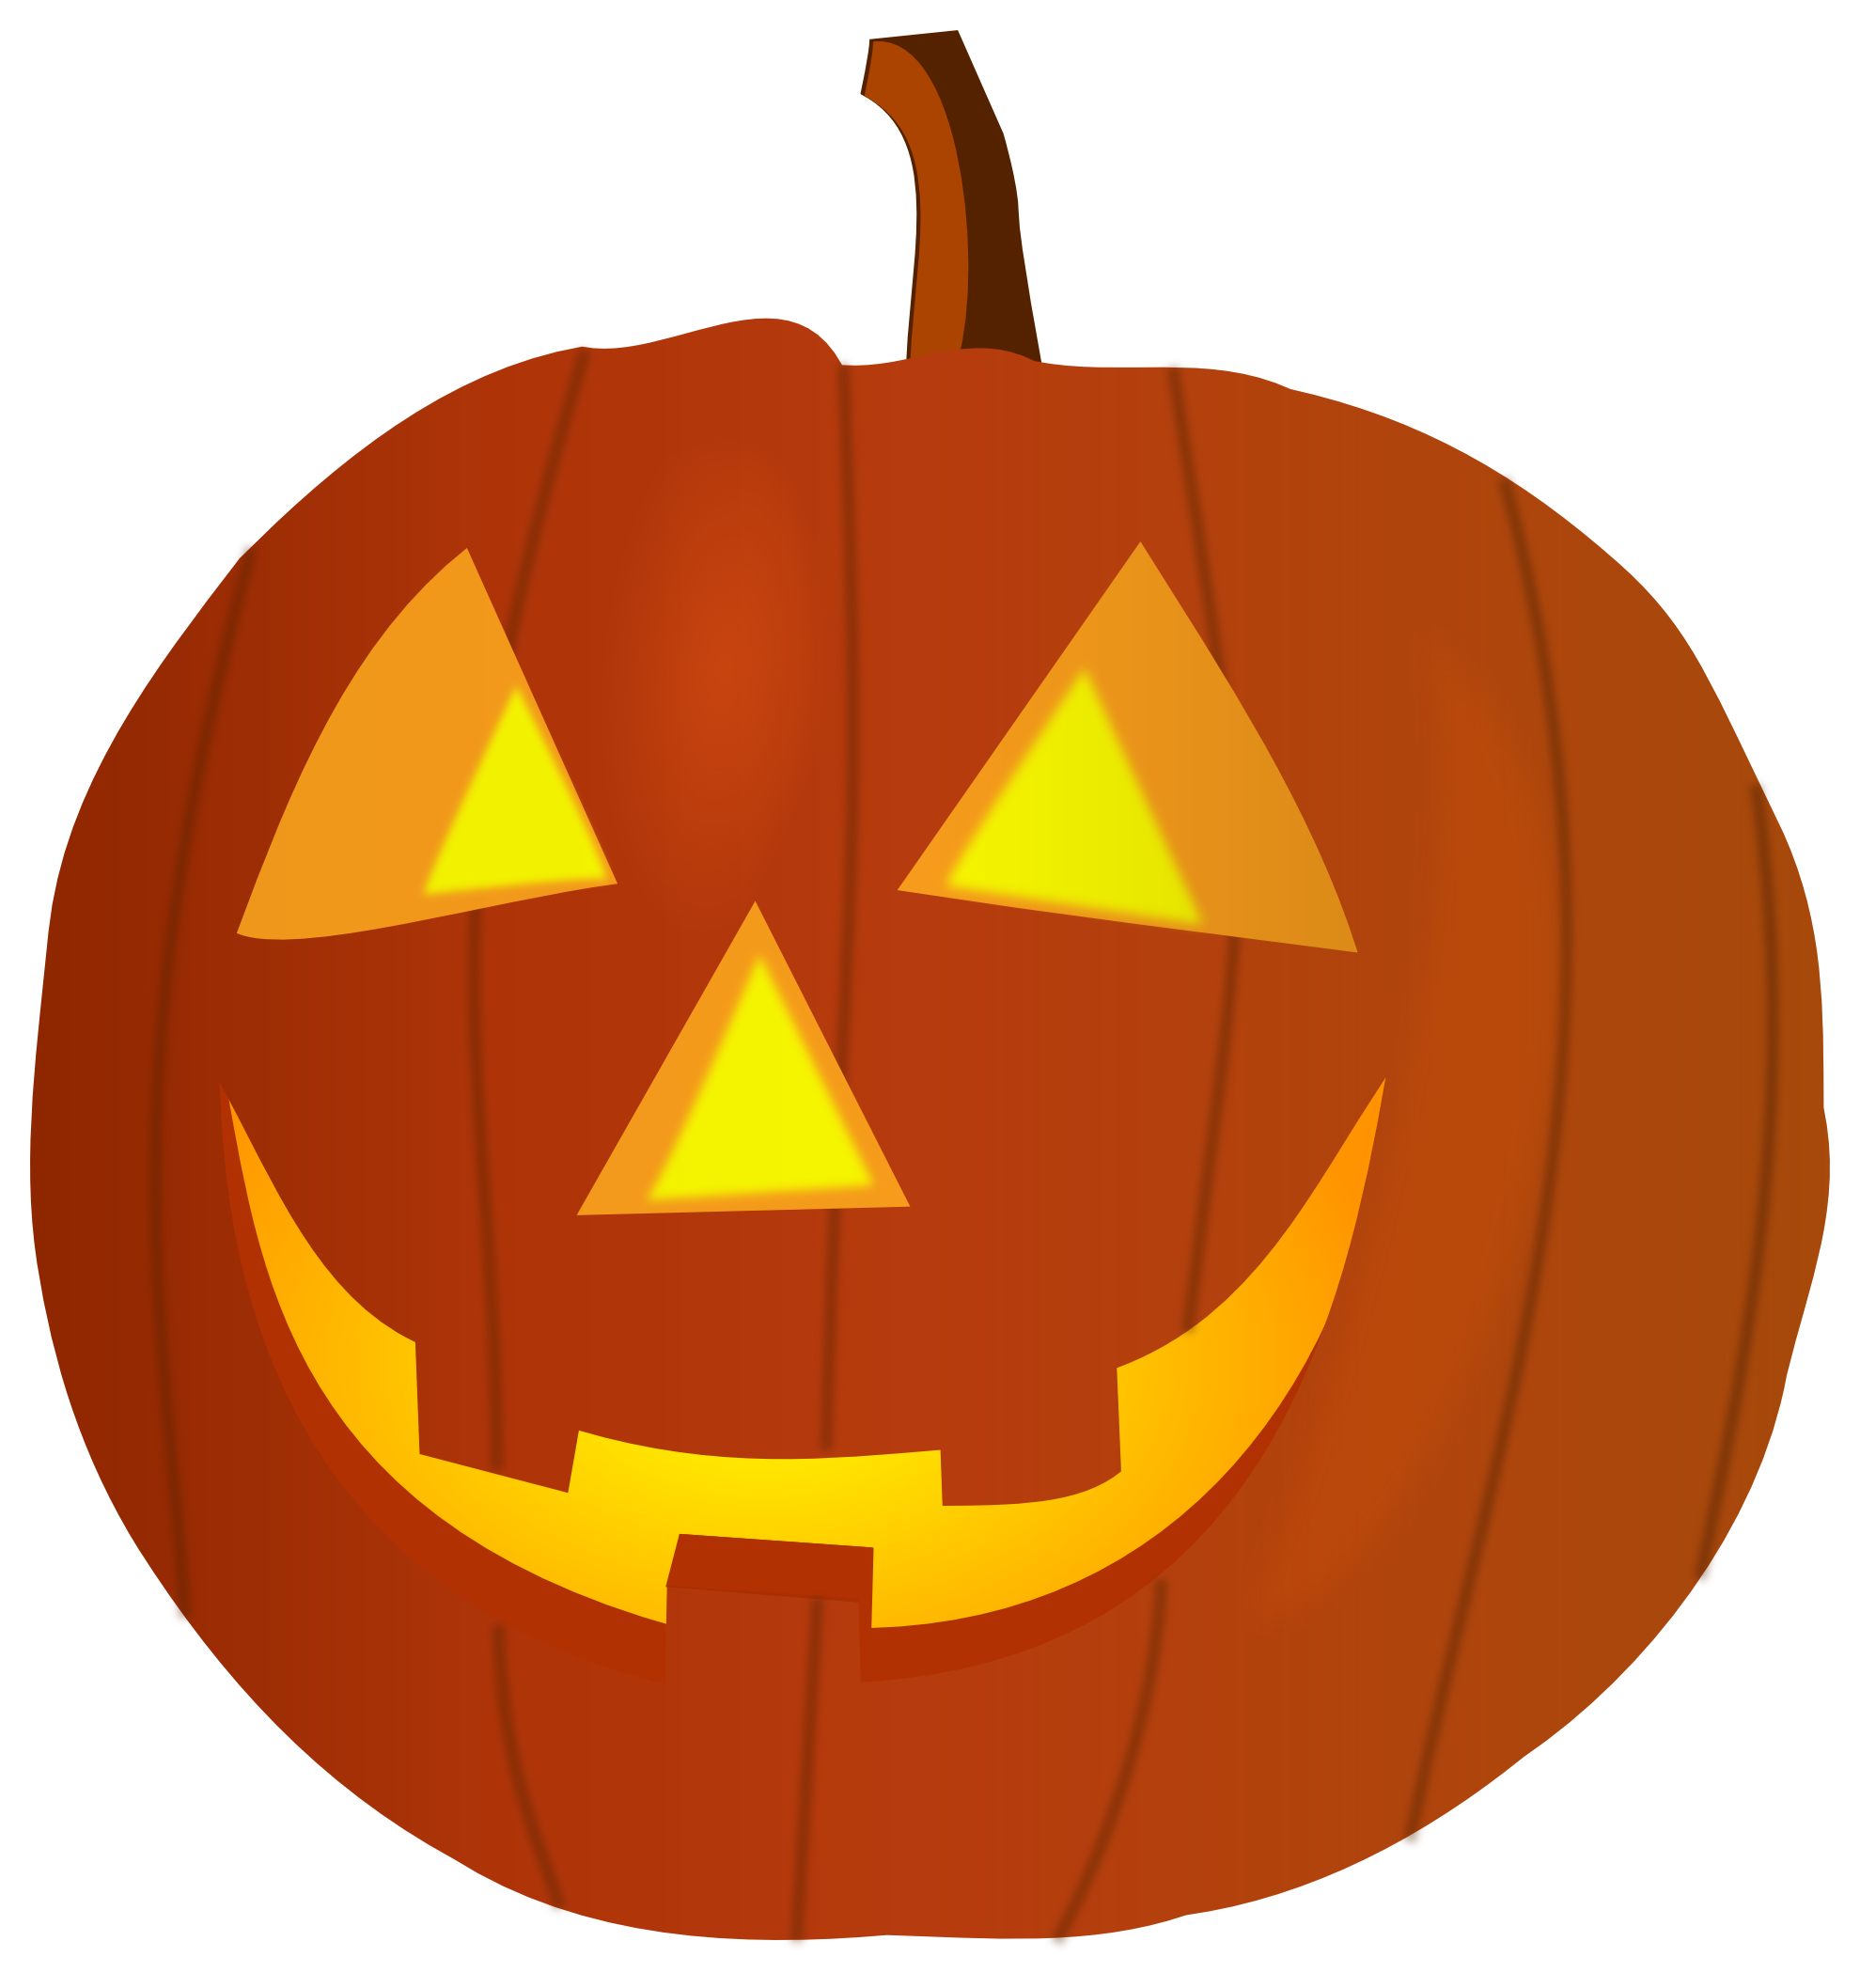 Happy pumpkin png. Transparent image mart